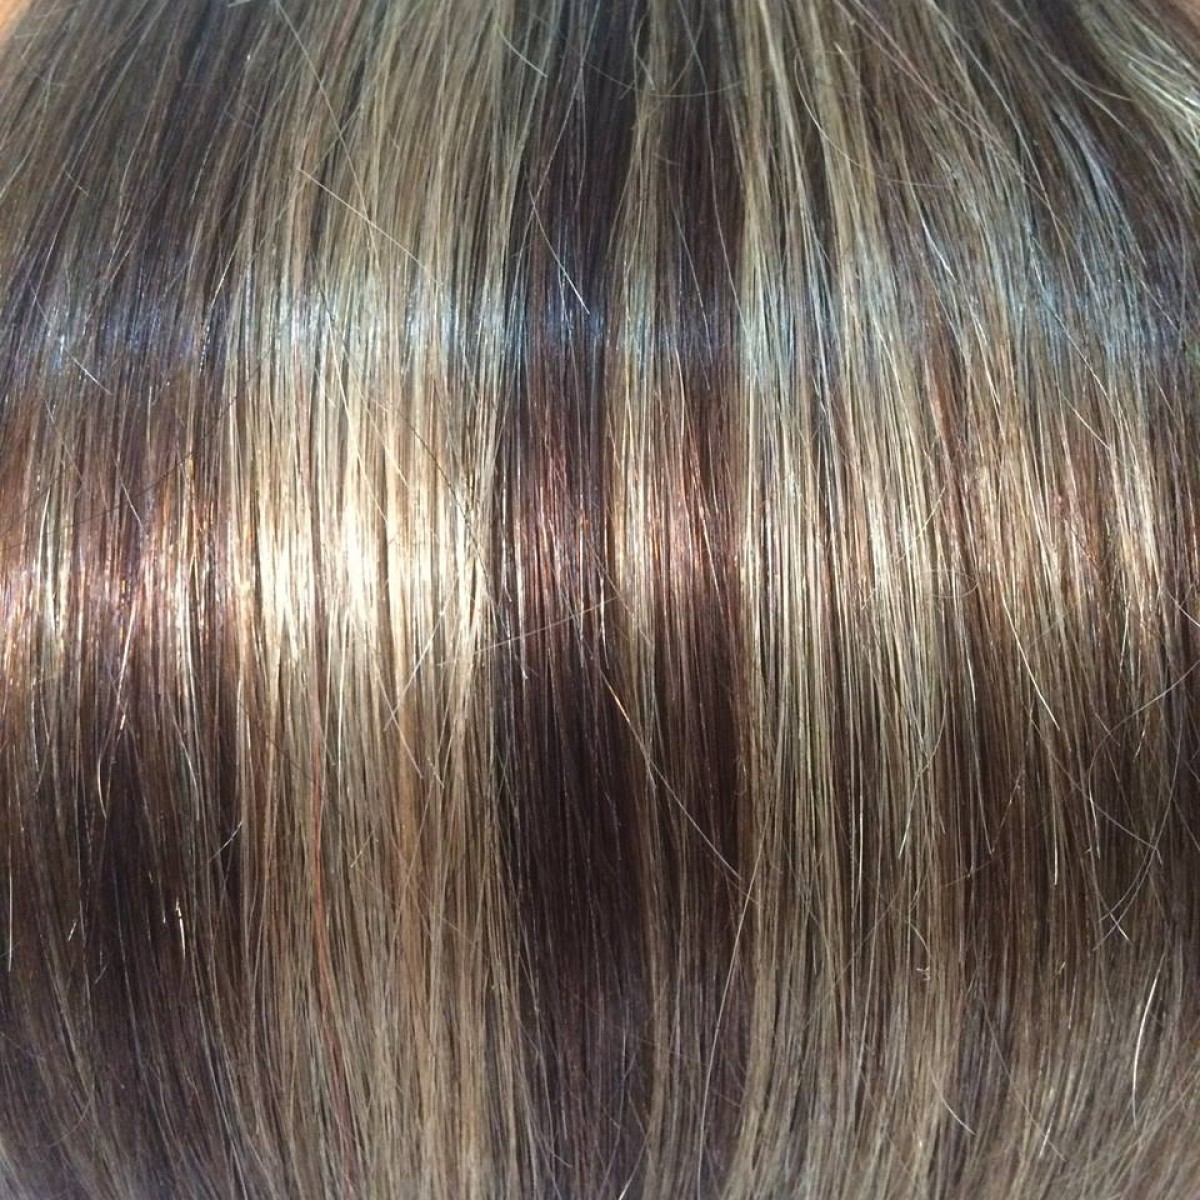 Natural Brown Light Brown 4 12 Highlights 20 Inch